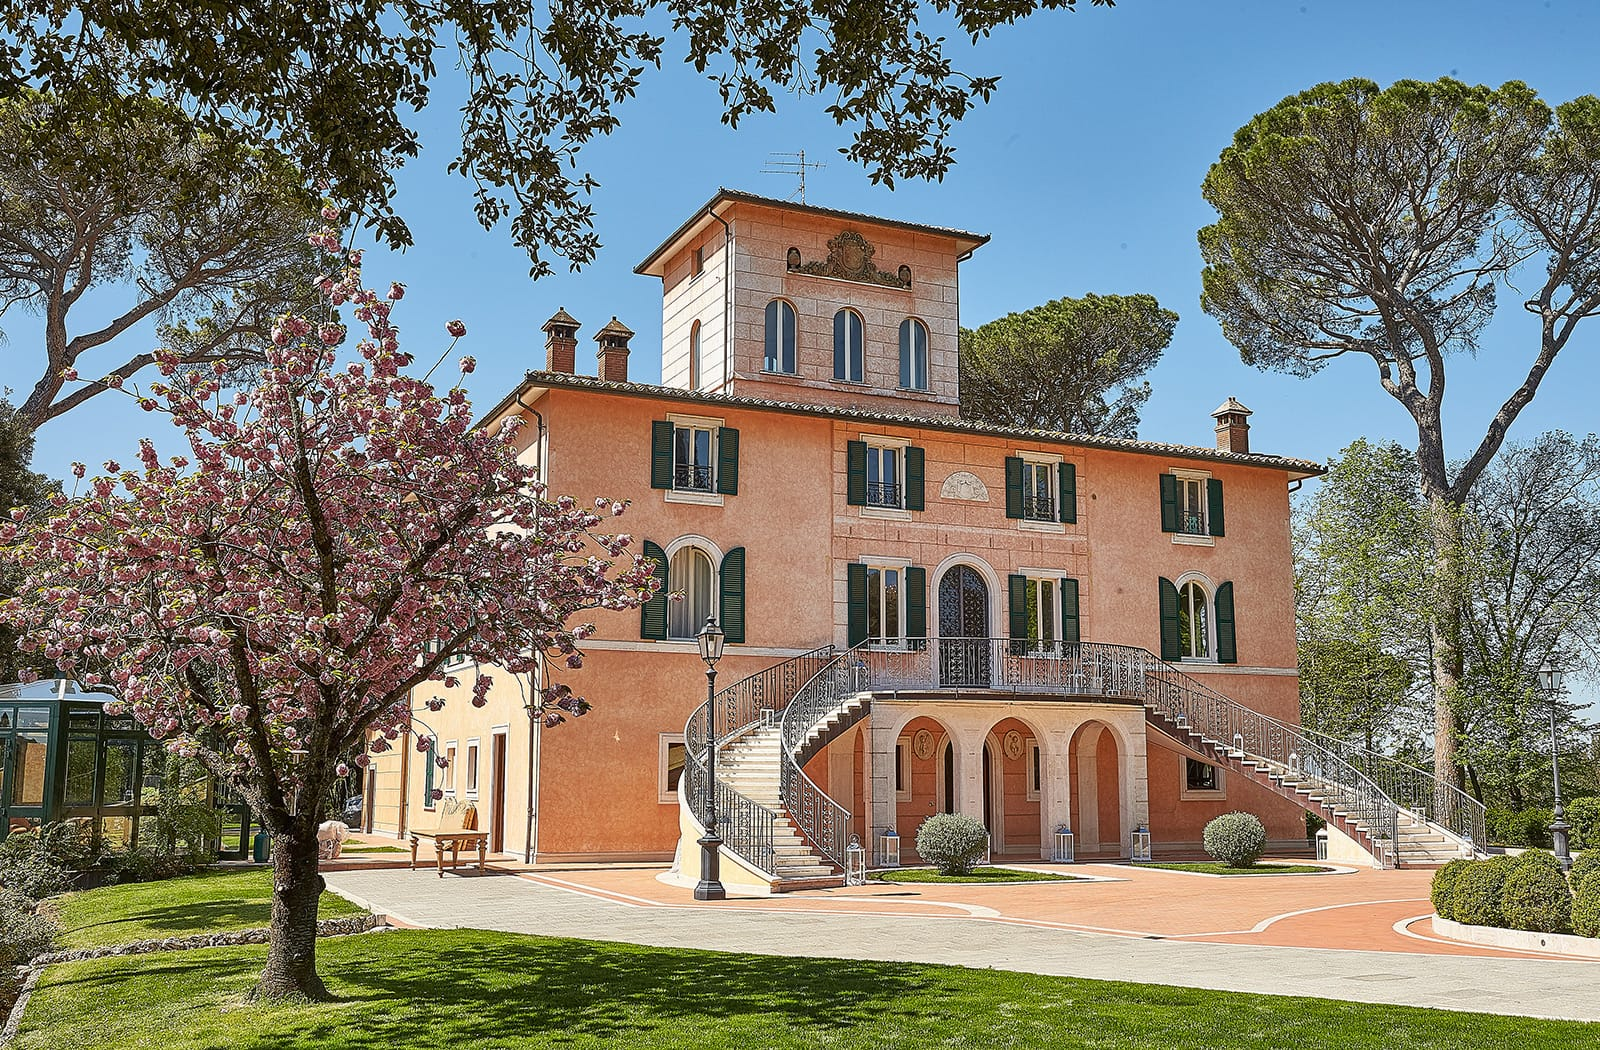 Villa Valentini Bonaparte, Perugia - An opulent Italian villa nestled between the Tuscan and Umbrian countryside with well manicured grounds; a stunning backdrop ideal for weddings of 70-120 people.Read More…